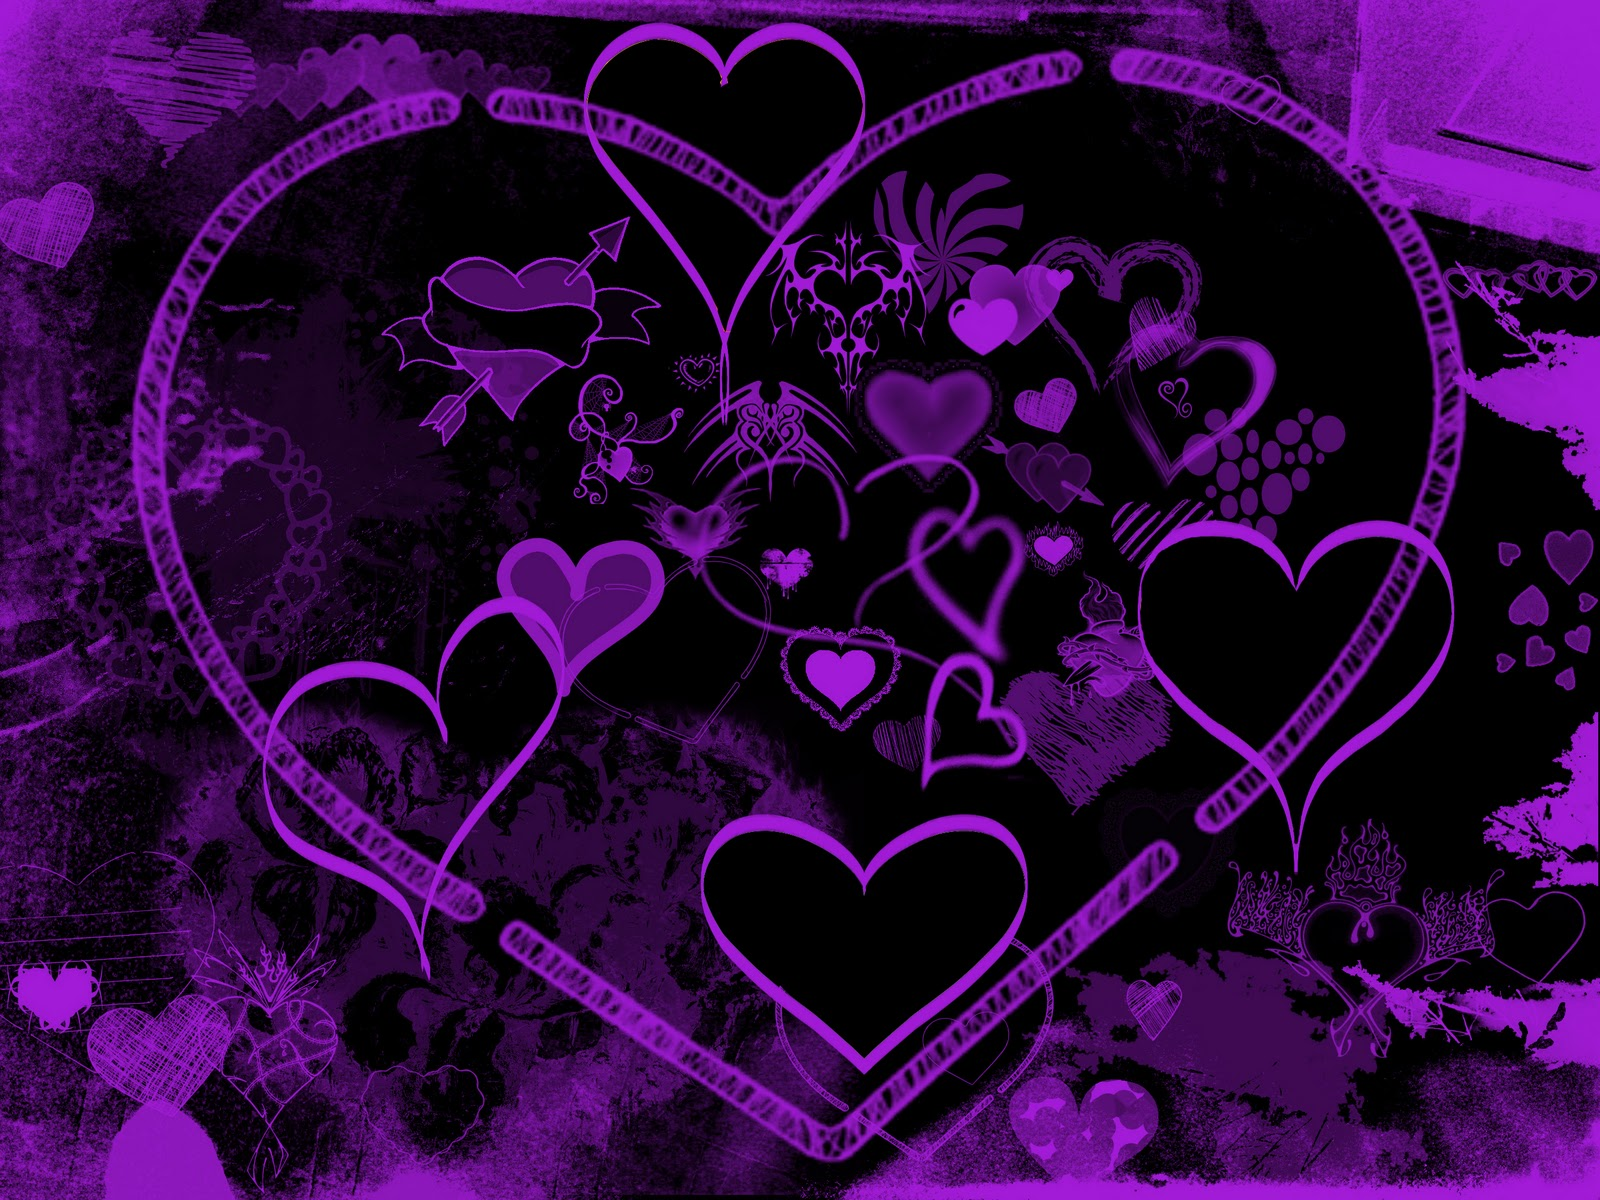 http://4.bp.blogspot.com/-uEM_YaY2Kc0/TyQJtOBhnvI/AAAAAAAADSM/JueIyHenLs4/s1600/love-purple-wallpaper-download.jpg